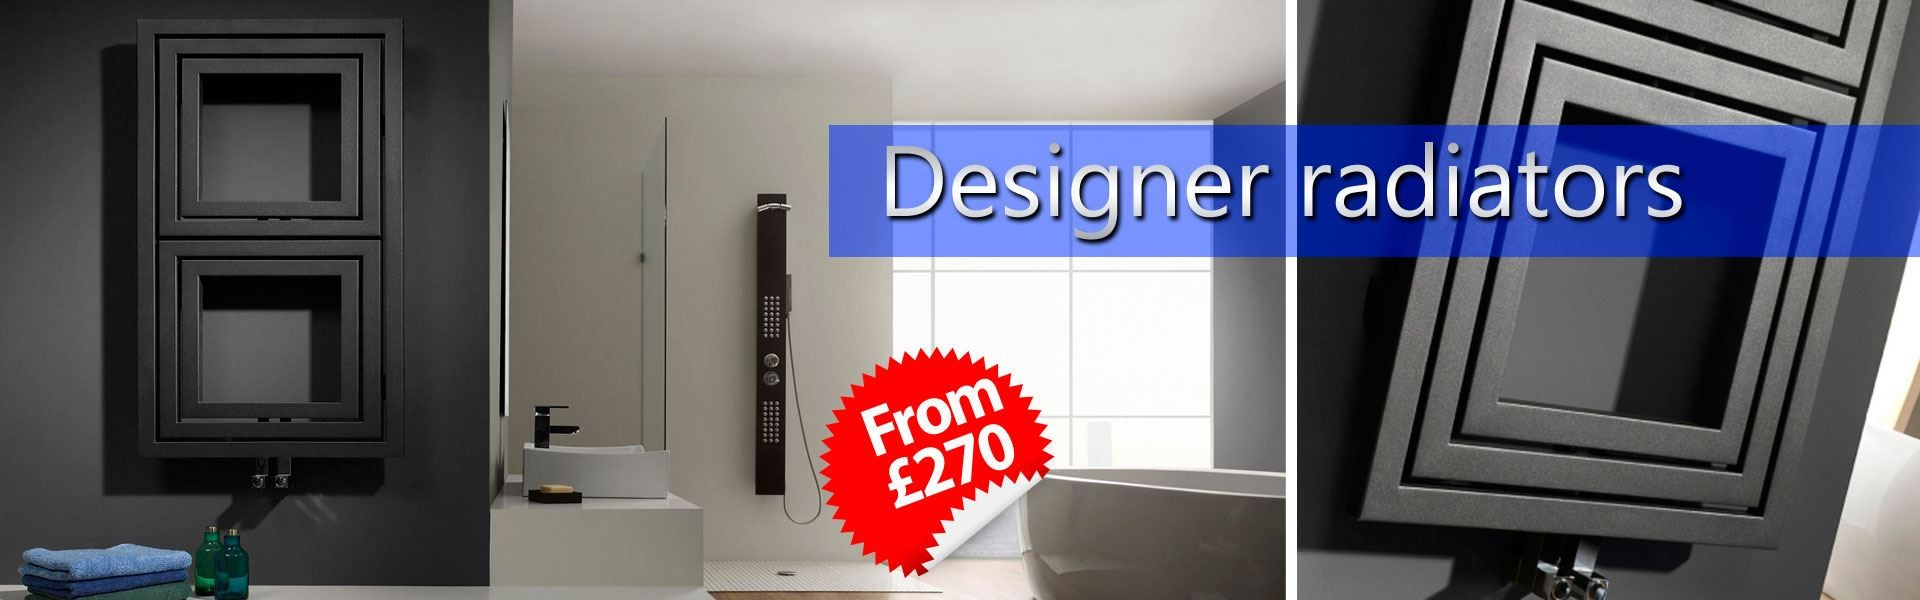 Bathroom Radiators